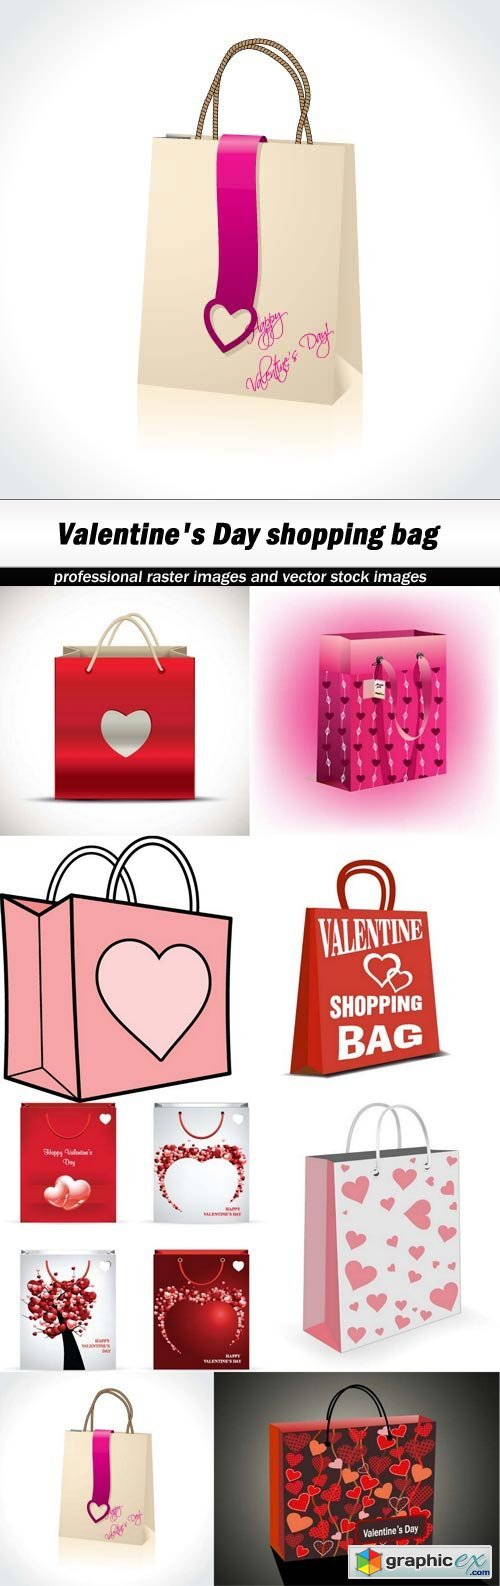 Valentine's Day shopping bag